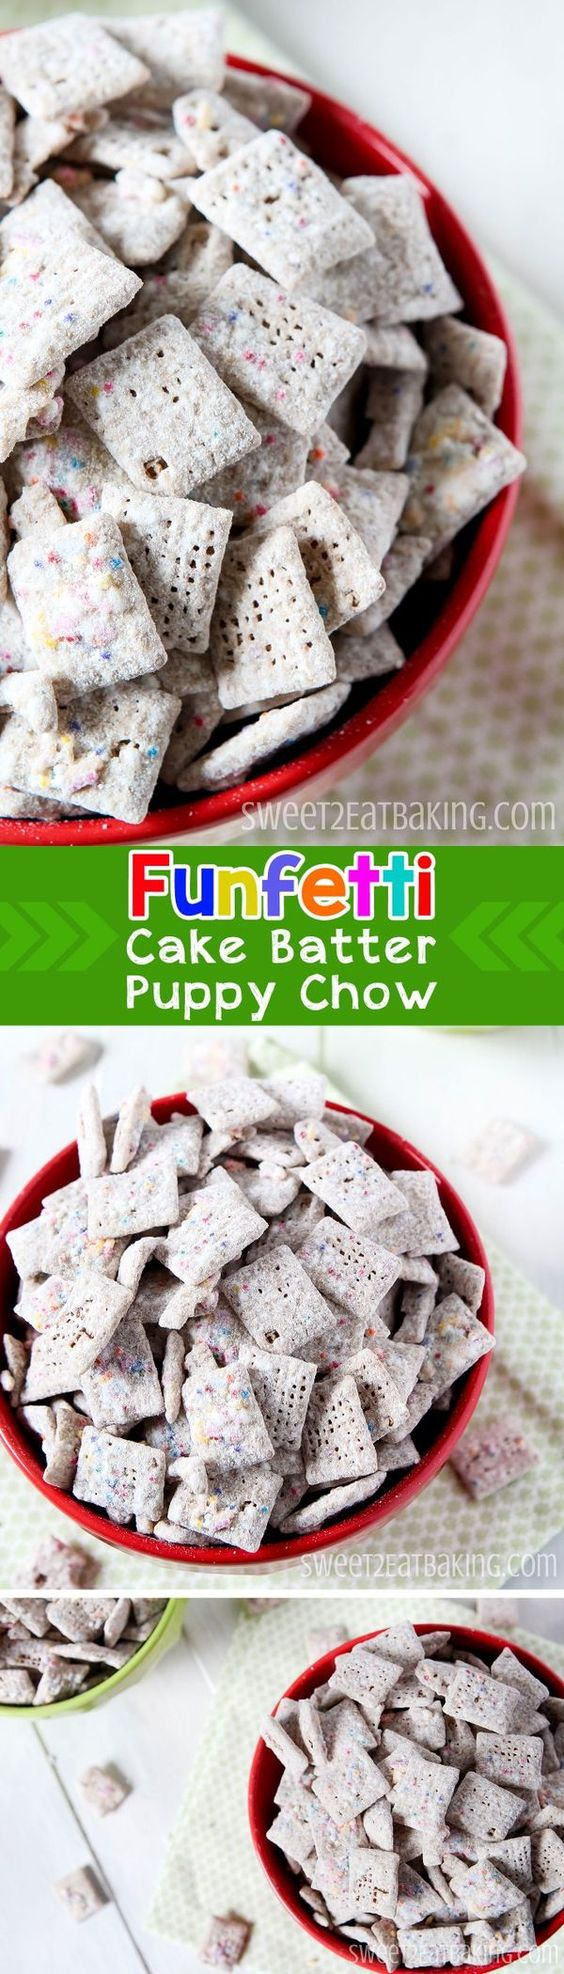 Funfetti Cake Batter Puppy Chow (Muddy Buddies) Chex Recipe by Sweet2EatBaking.com | You can really taste the cake batter in this recipe, and the white chocolate really compliments that flavour too. The Chex cereal and the sprinkles add a nice crunch to the smooth cake batter flavoured white chocolate. Ideal for a birthday party, a dessert, to take to the movies, or a sweet snack whenever!